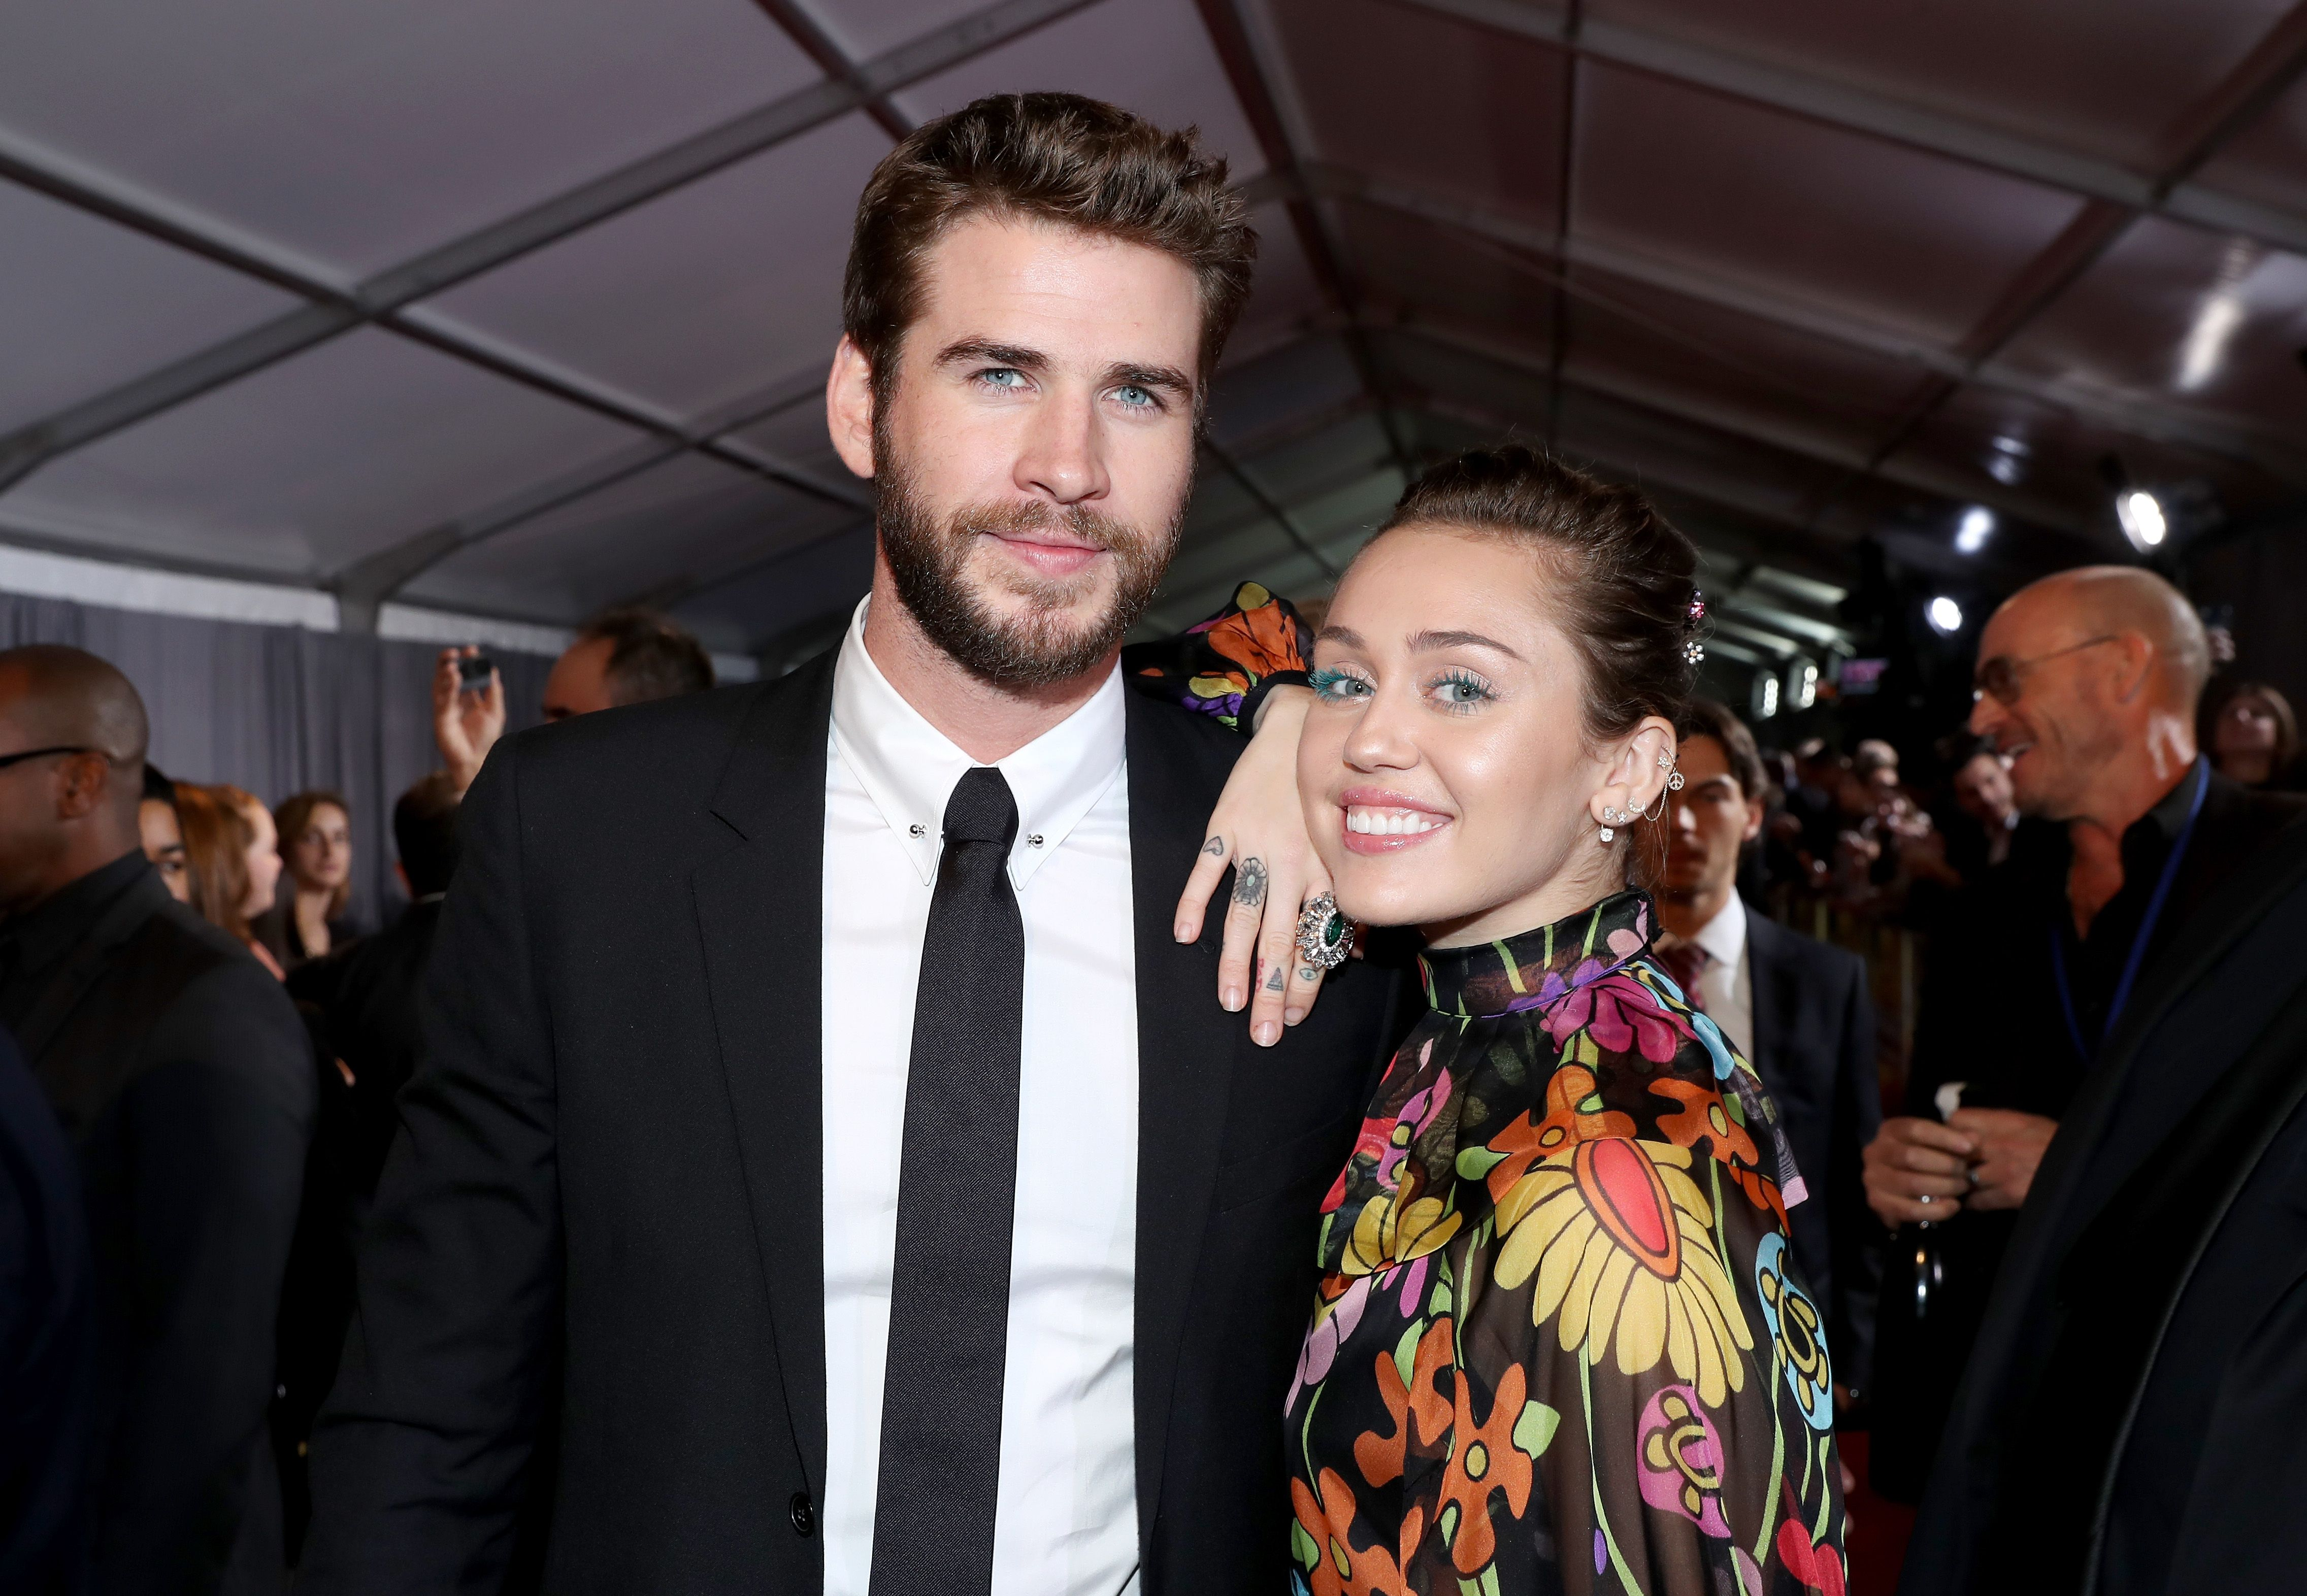 Miley Cyrus and Liam Hemsworth Just Finalized Their Divorce Five Months After Breaking Up